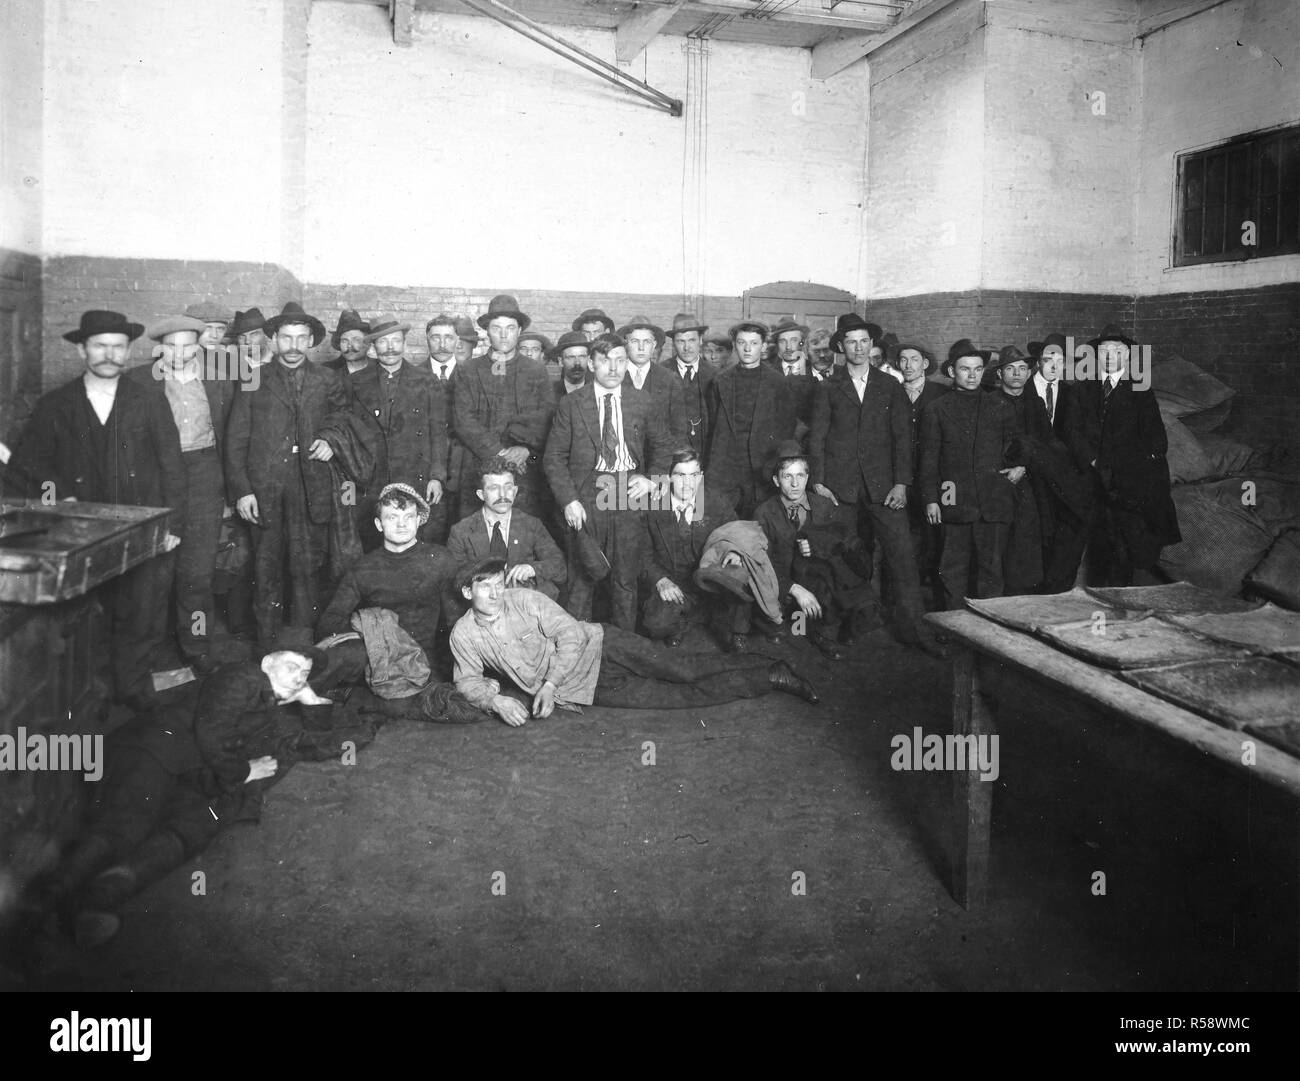 1918 - Arrest of Alien Enemies in U.S.A. - Crew of the Russian steamer Omsk who tried to kill their captain and take the steamer to Russia. Shortly after their arrest at Norfolk, Virginia - Stock Image